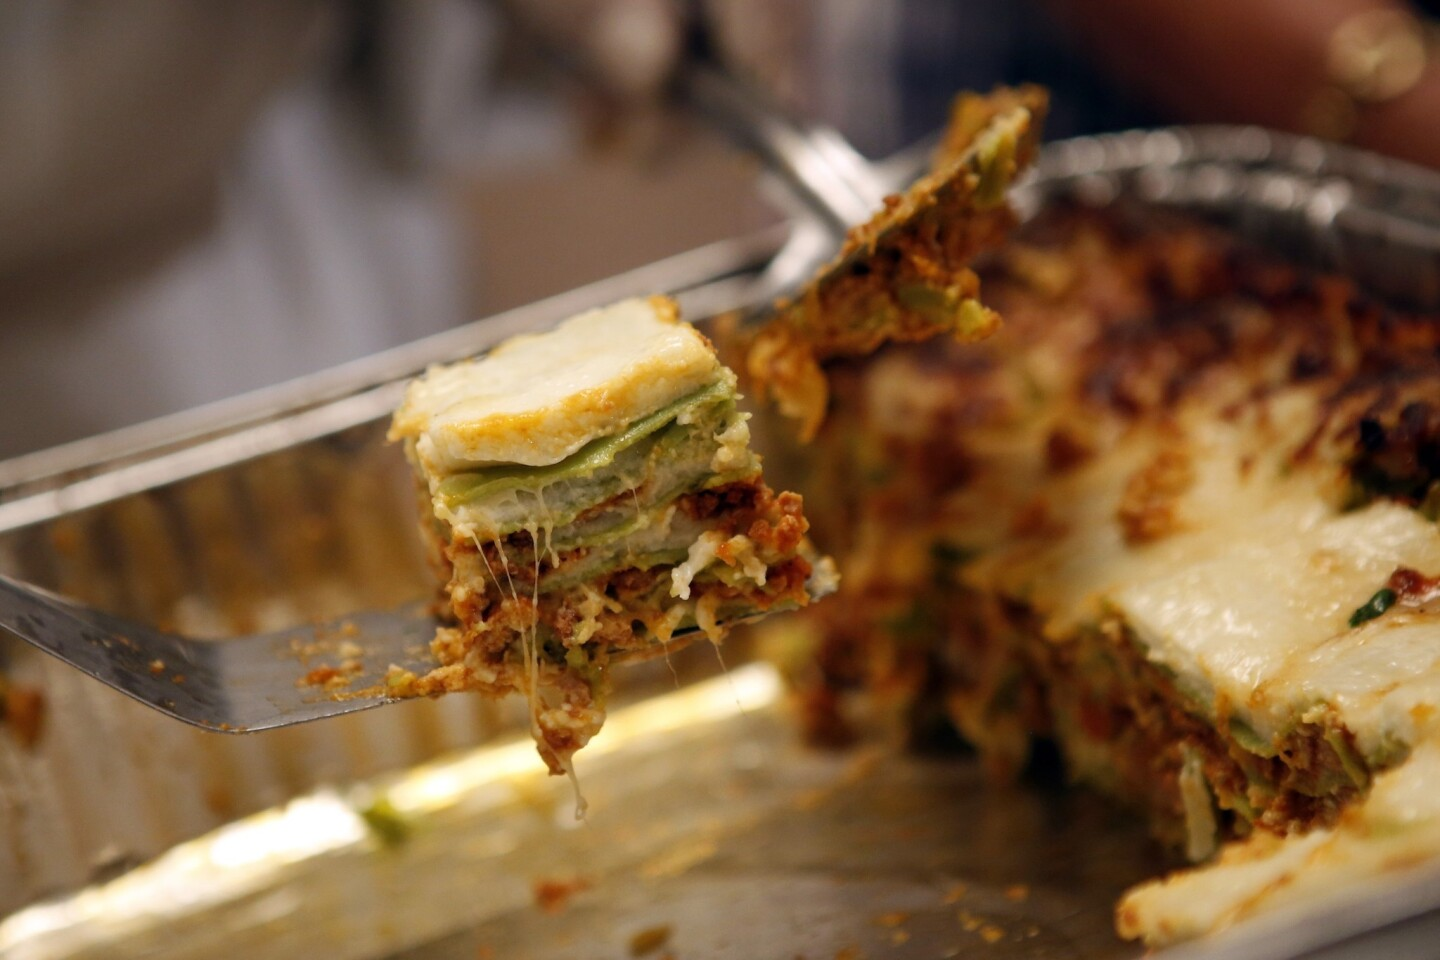 Lasagna verde with meat ragu and spinach, served by Gino Elizabeth Angelini.